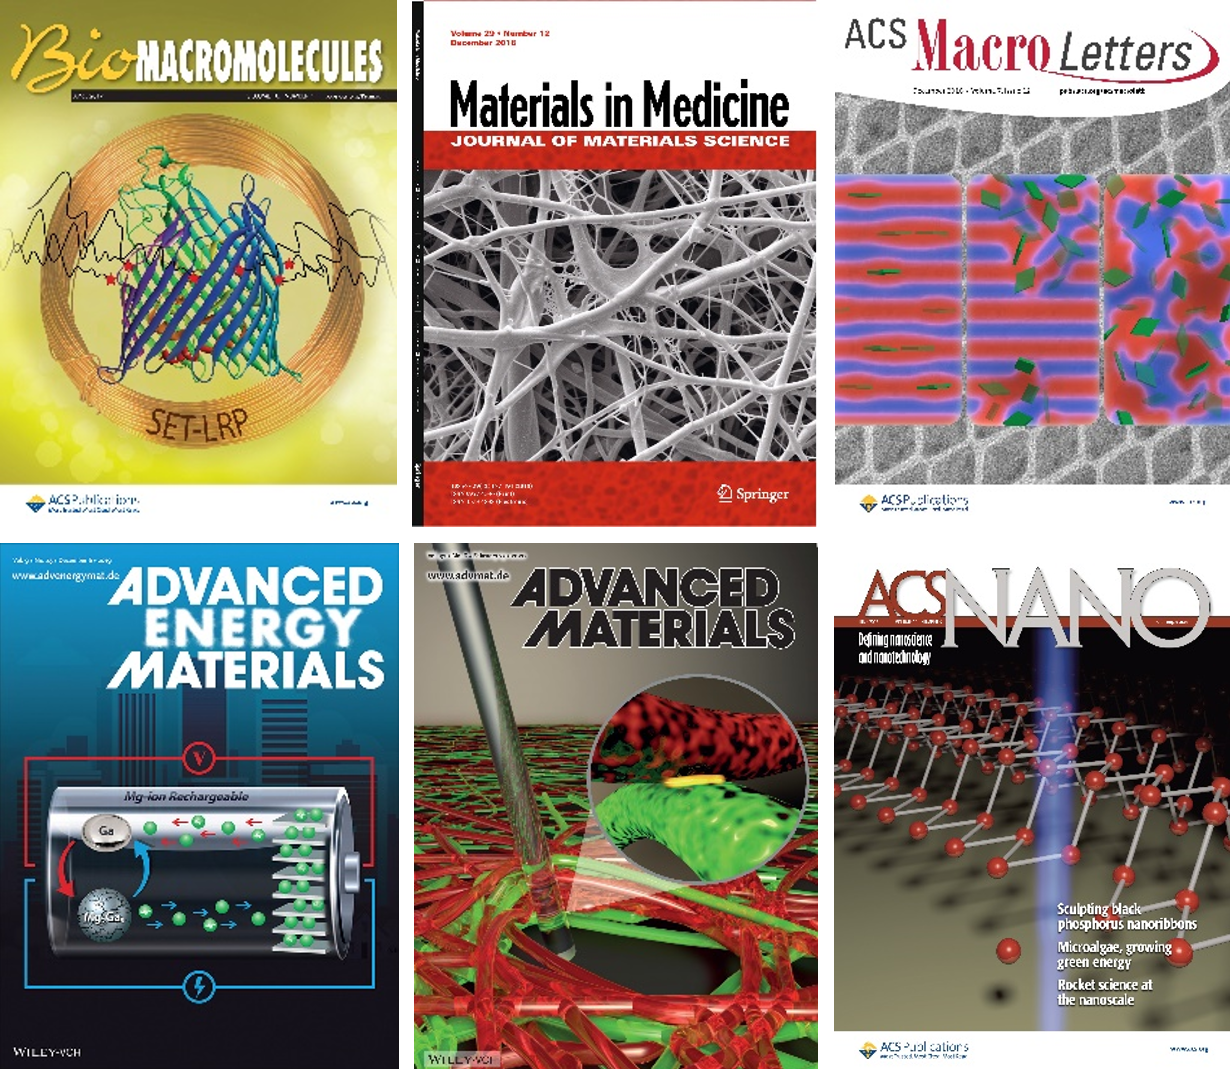 Recent Journal Covers Highlight MRSEC Activity